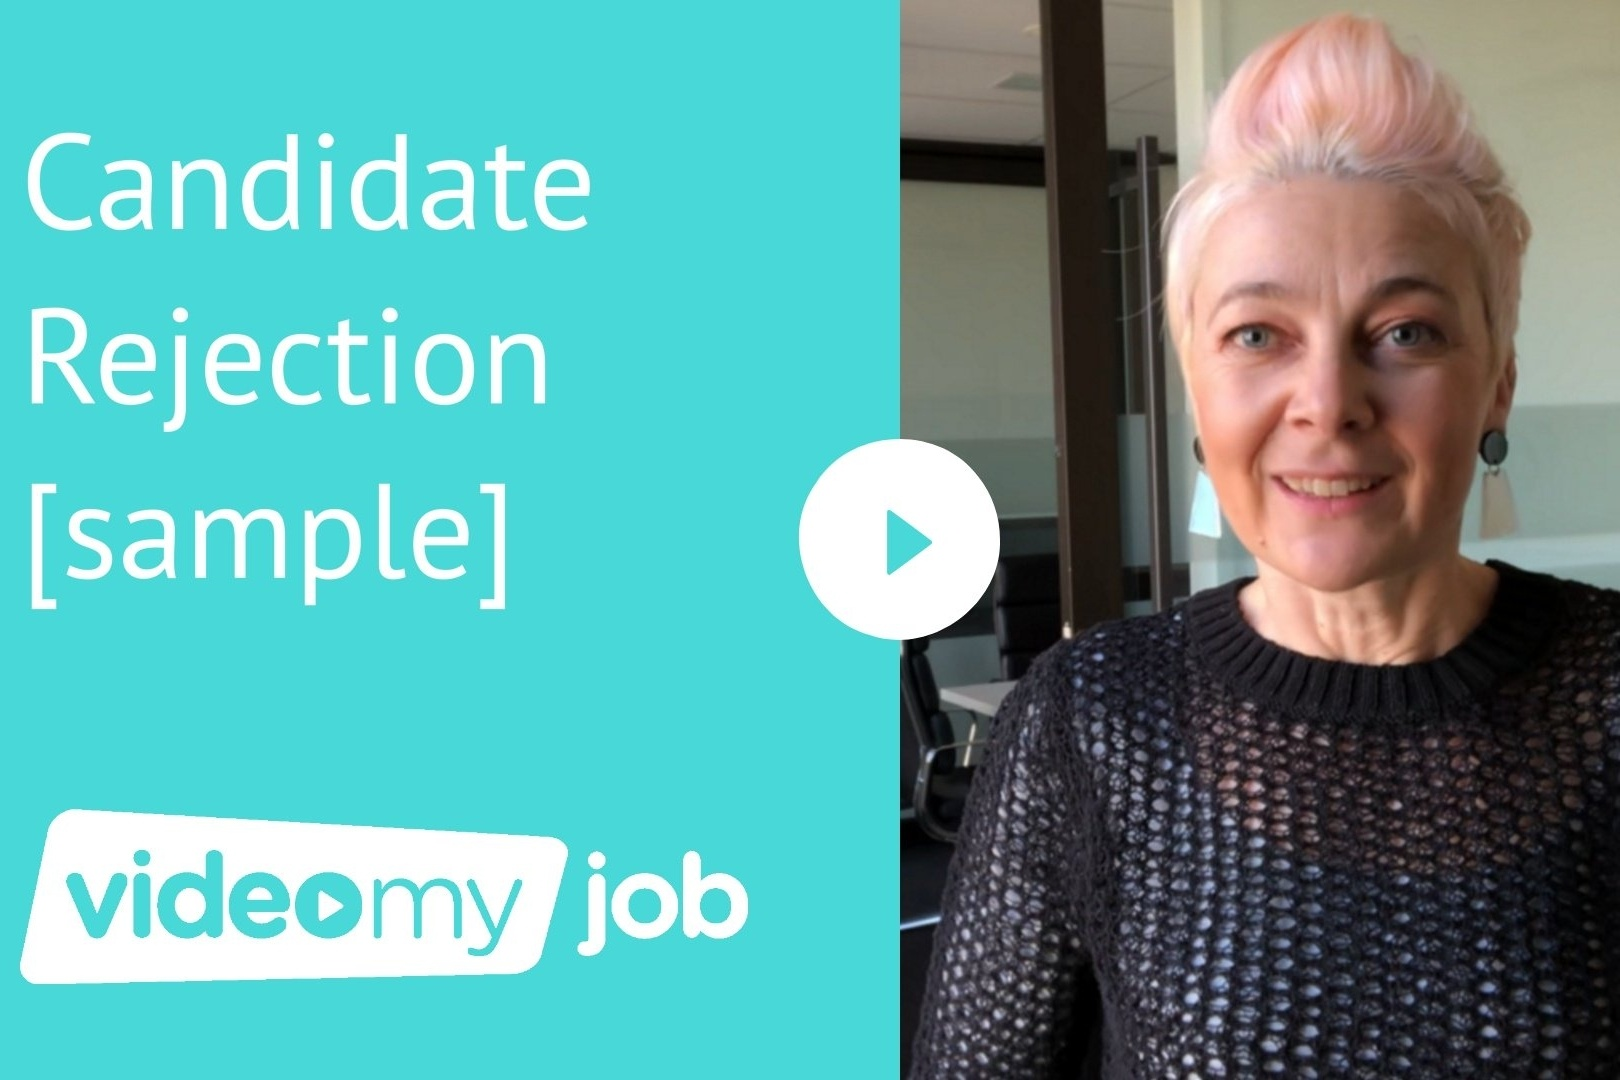 Blog How to use video for candidate rejection-711988-edited